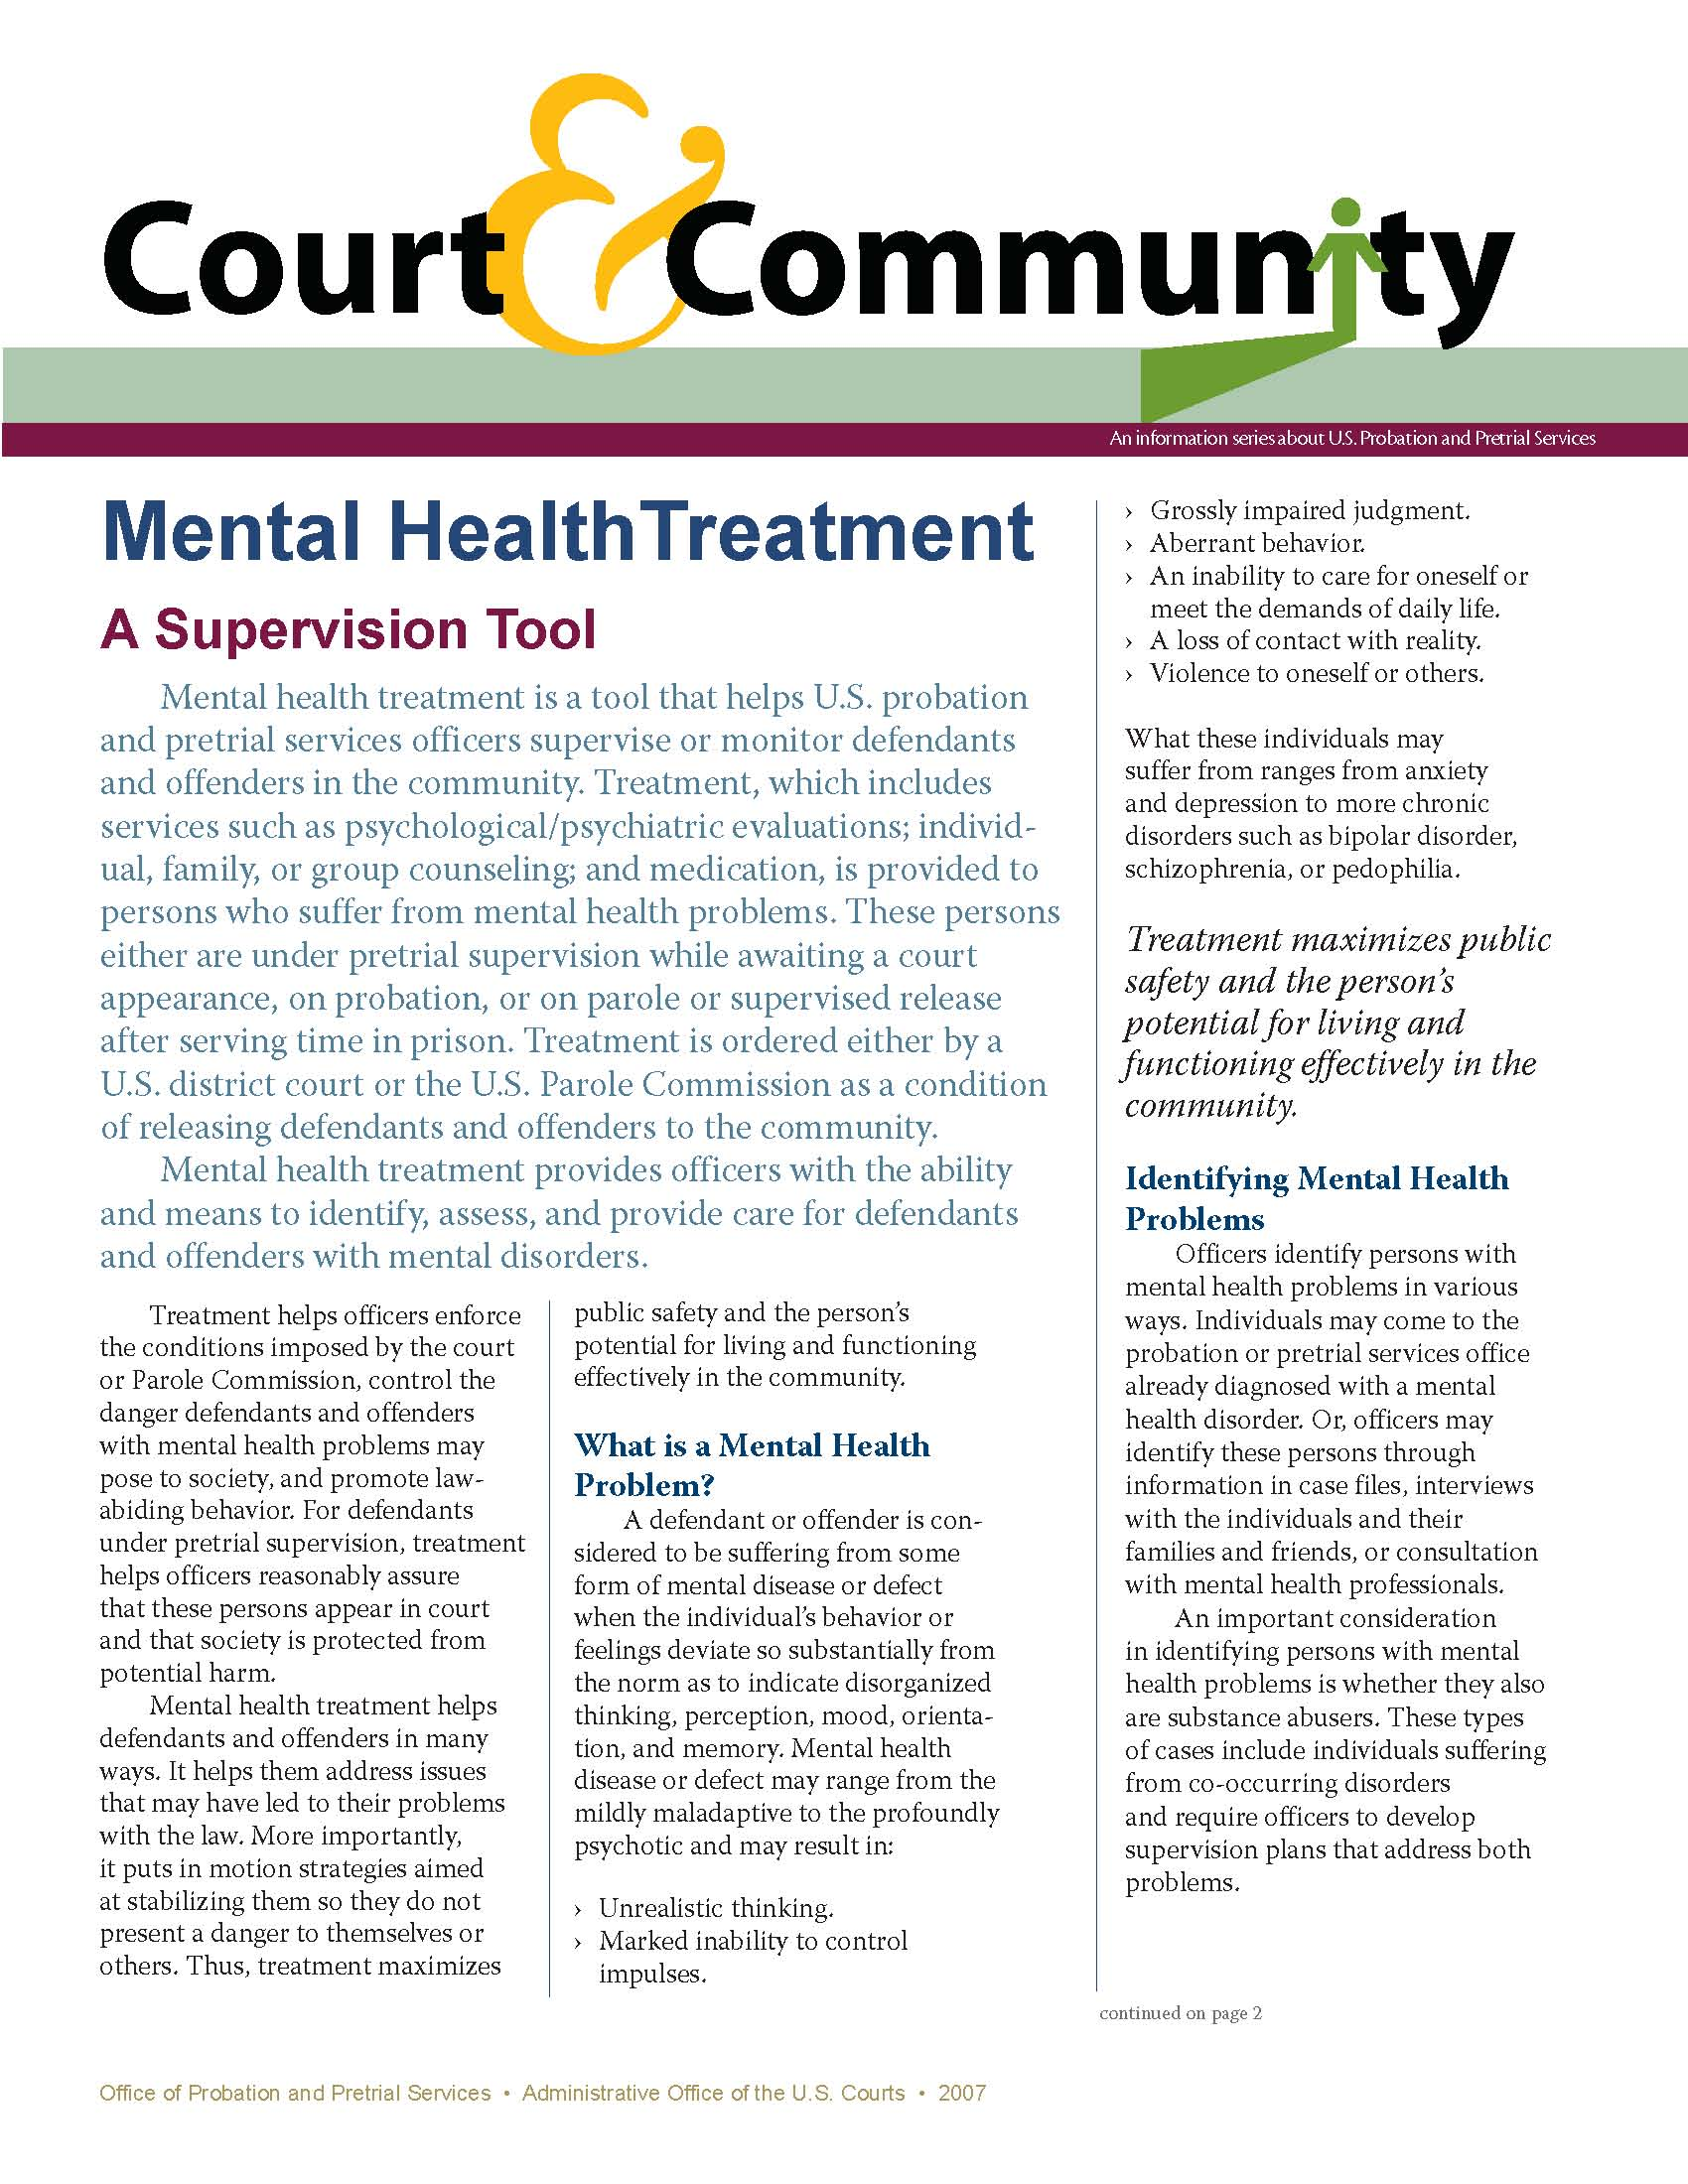 Mental_Health_Treatment1